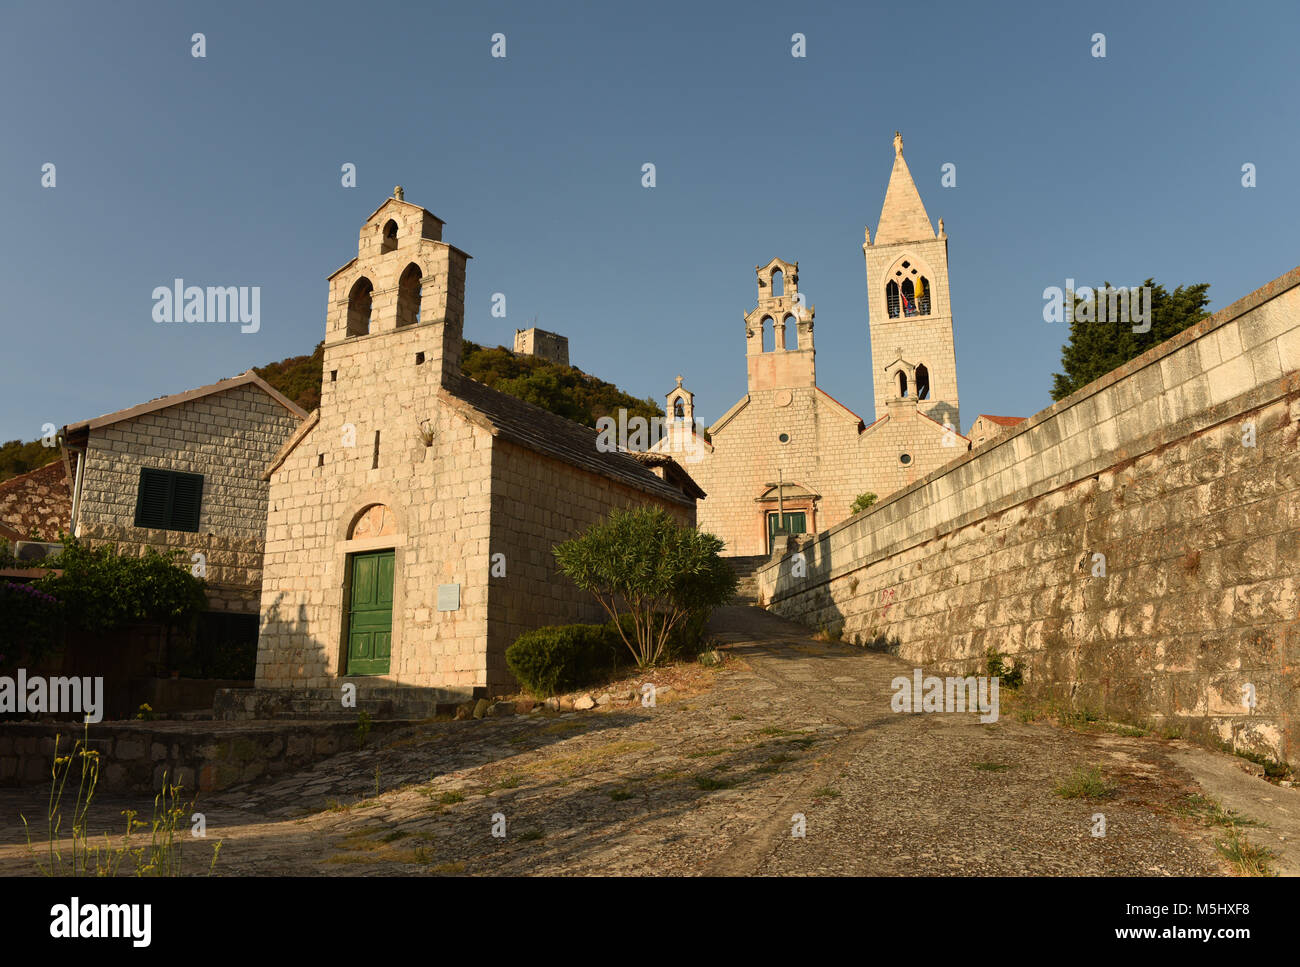 The churches of Saint Mary of grace and of saint Kosmas and Damian in Lastovo town on  island of Lastovo, Croatia - Stock Image